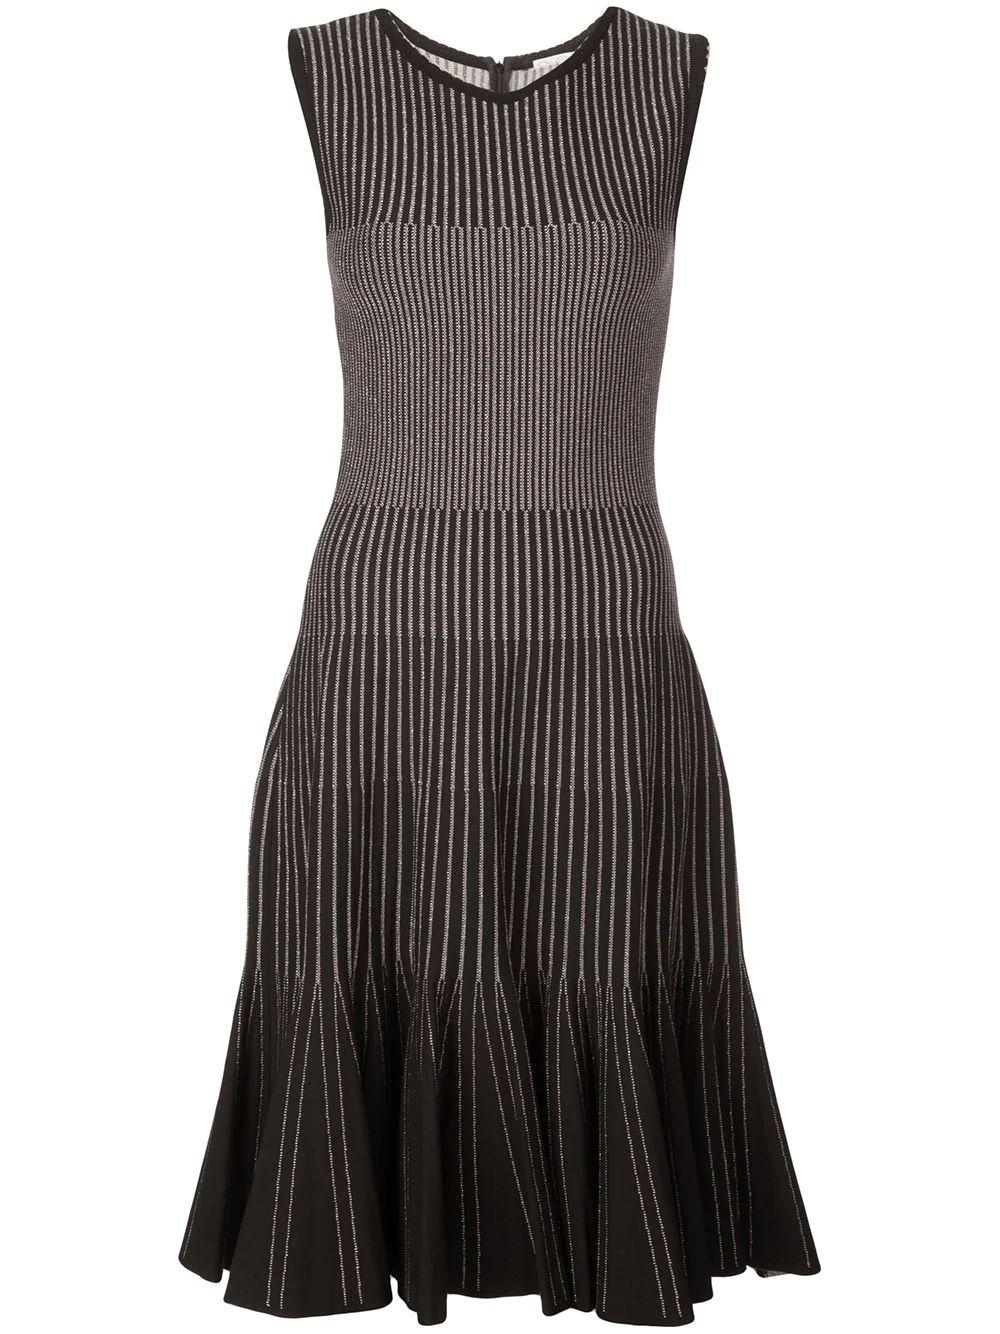 Sleeve Less Fit And Flare Day Dress 23'